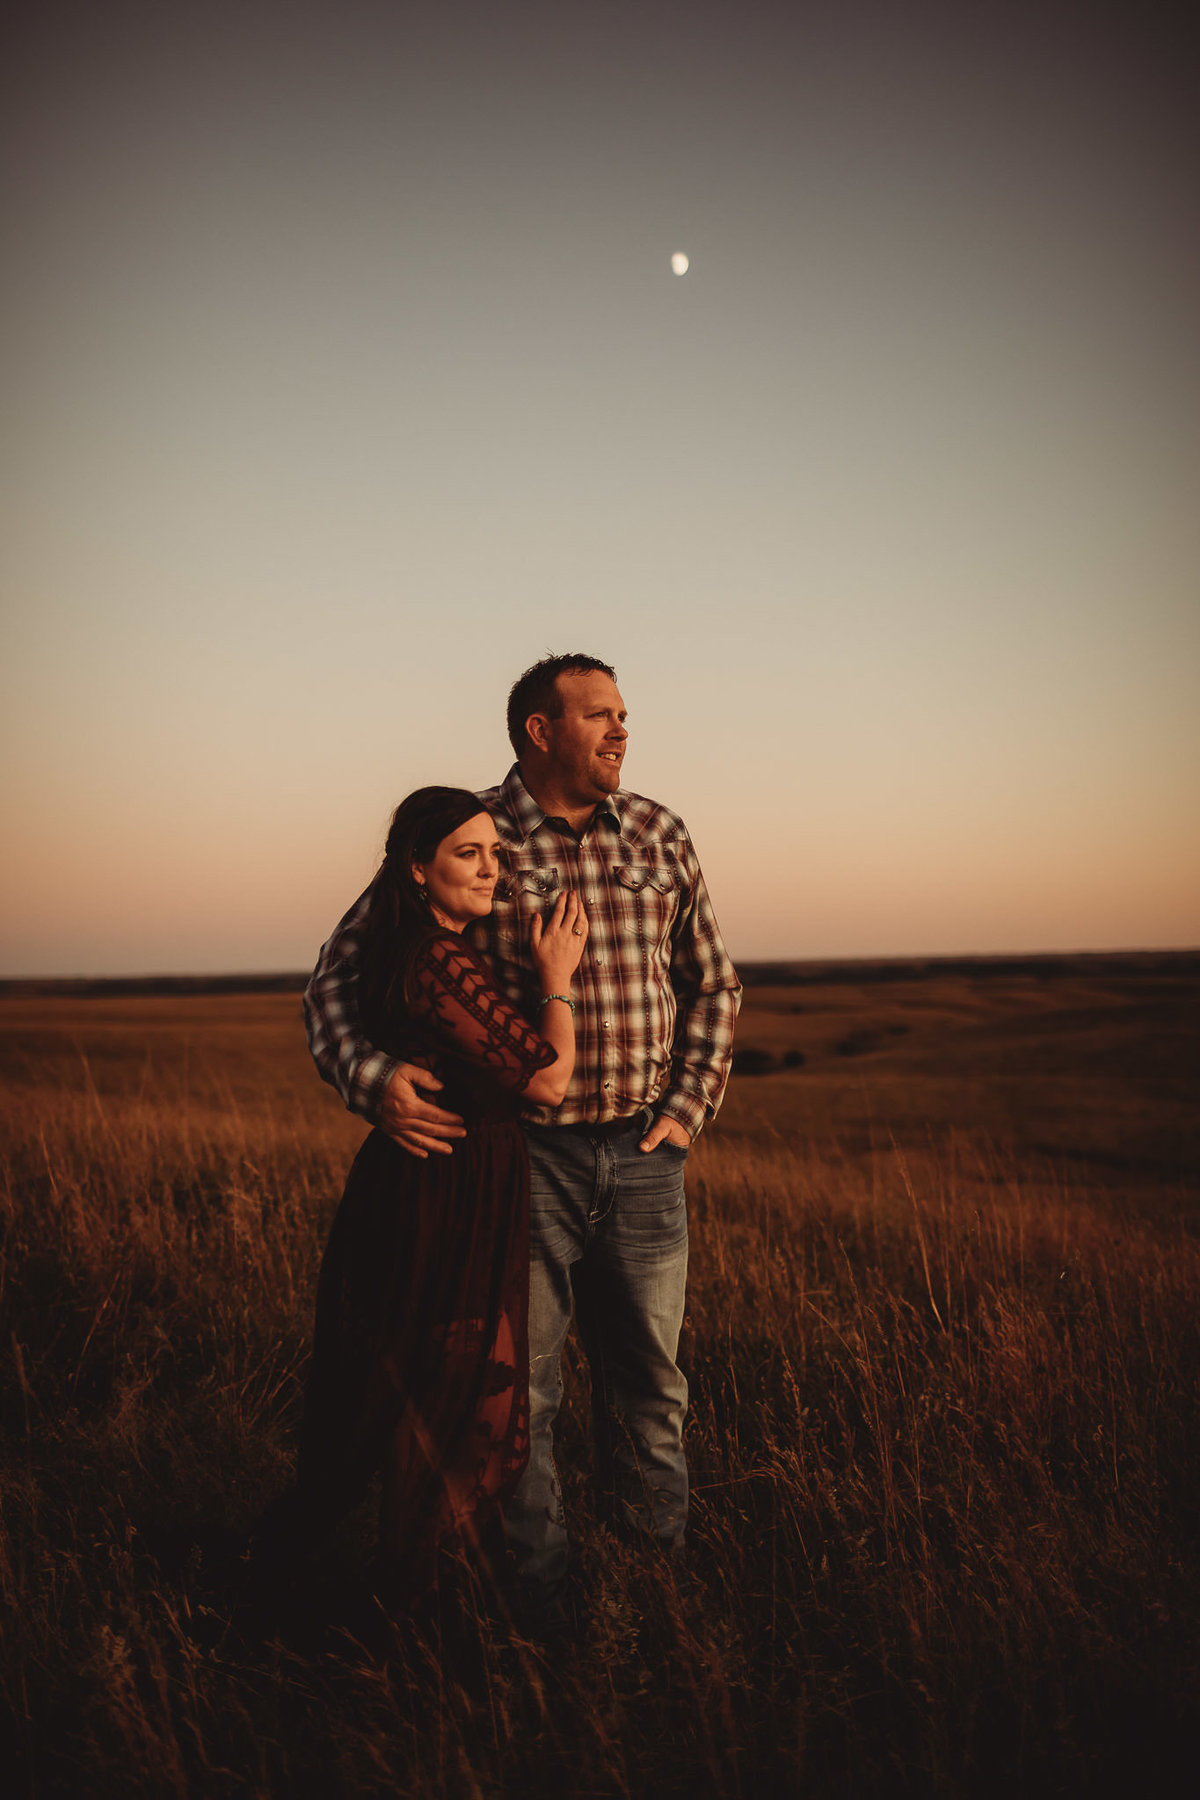 kansas-flint-hill-engagement-photos-native-roaming-22